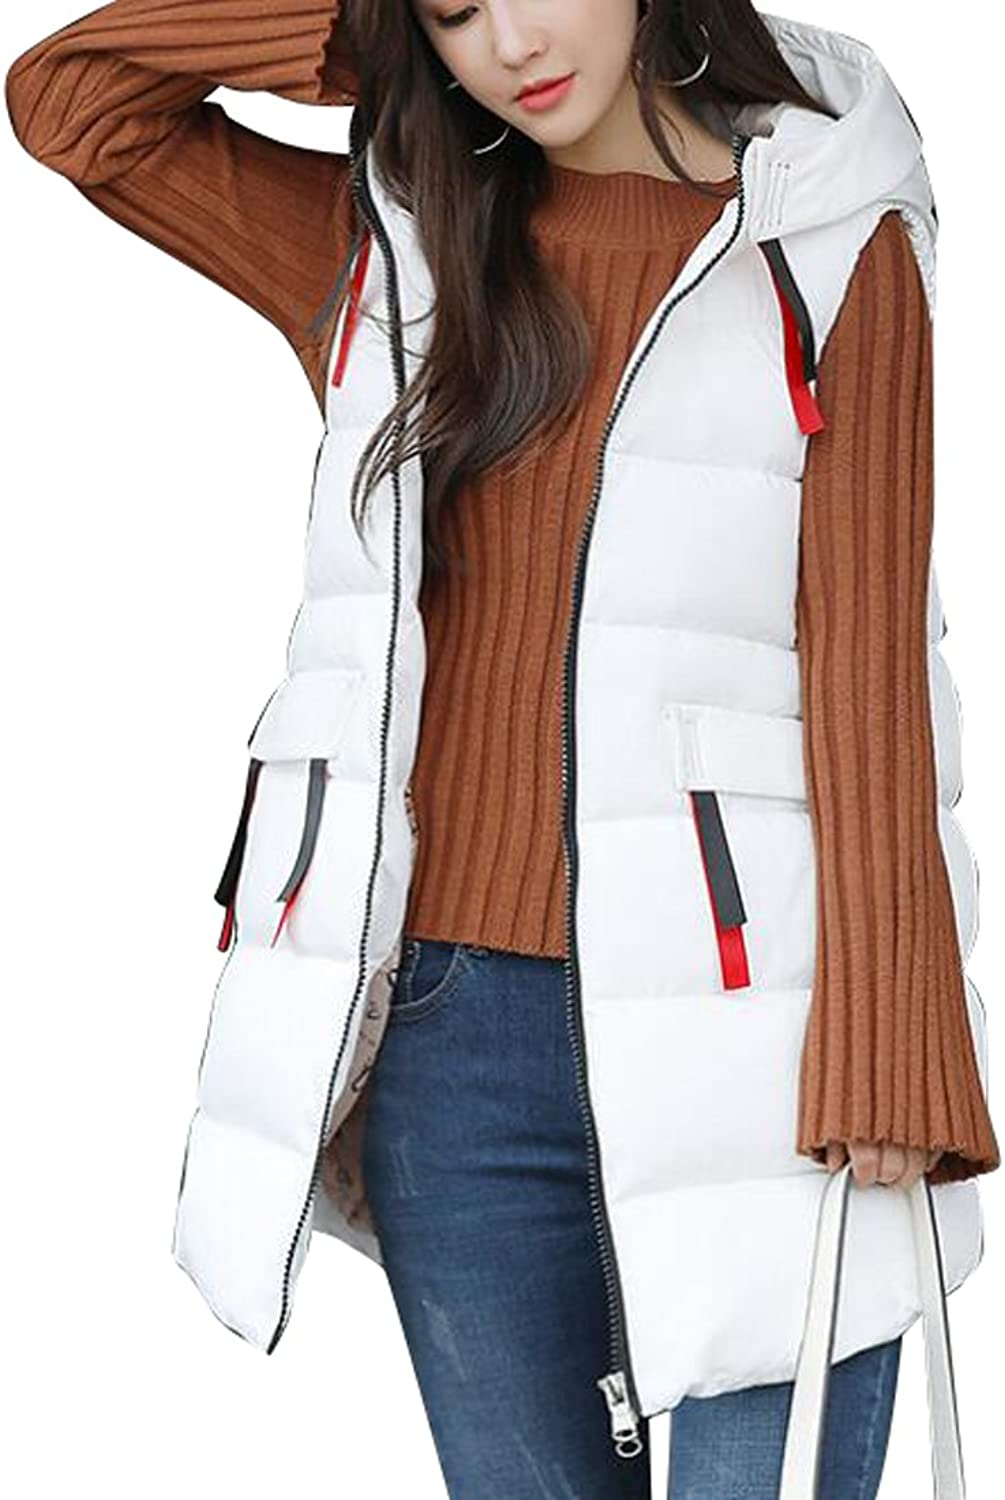 Fensajomon Womens Winter Hoodie Mid Length Down Quilted Puffer Vest Coat Waistcoat